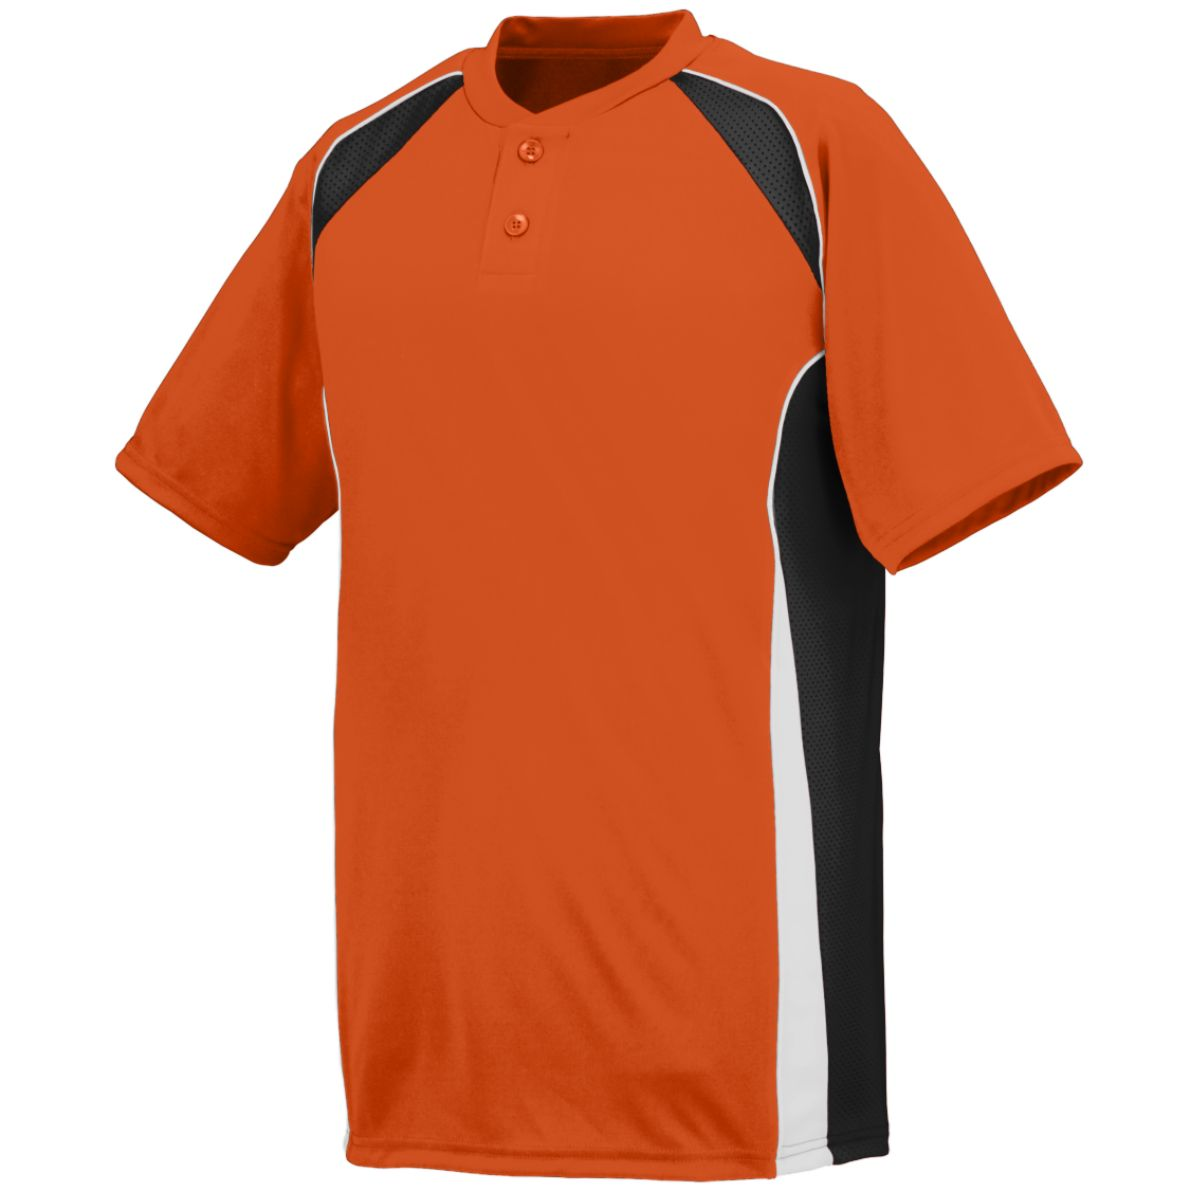 Augusta BASE HIT JERSEY OR BK WH XL by Augusta